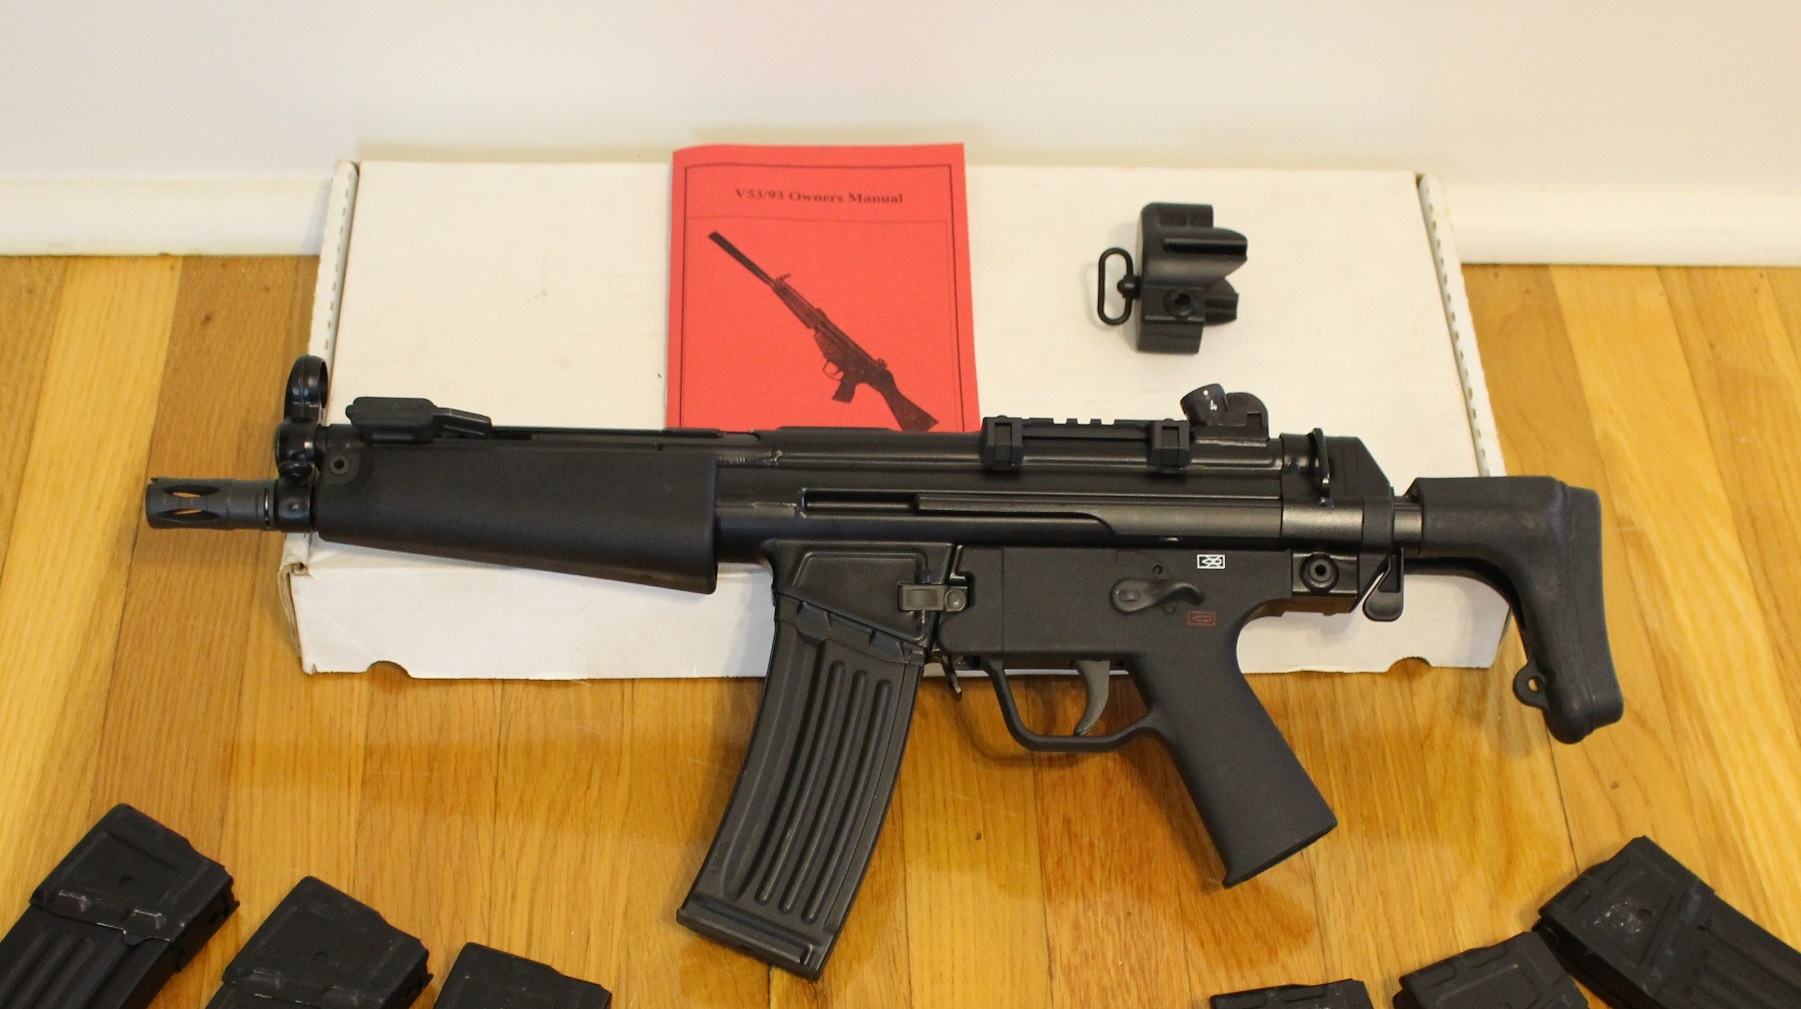 SOLD!: Vector 53 in SBR/pistol configuration - new, unfired, with accessories- alt=,500-img_1523-copy.jpg